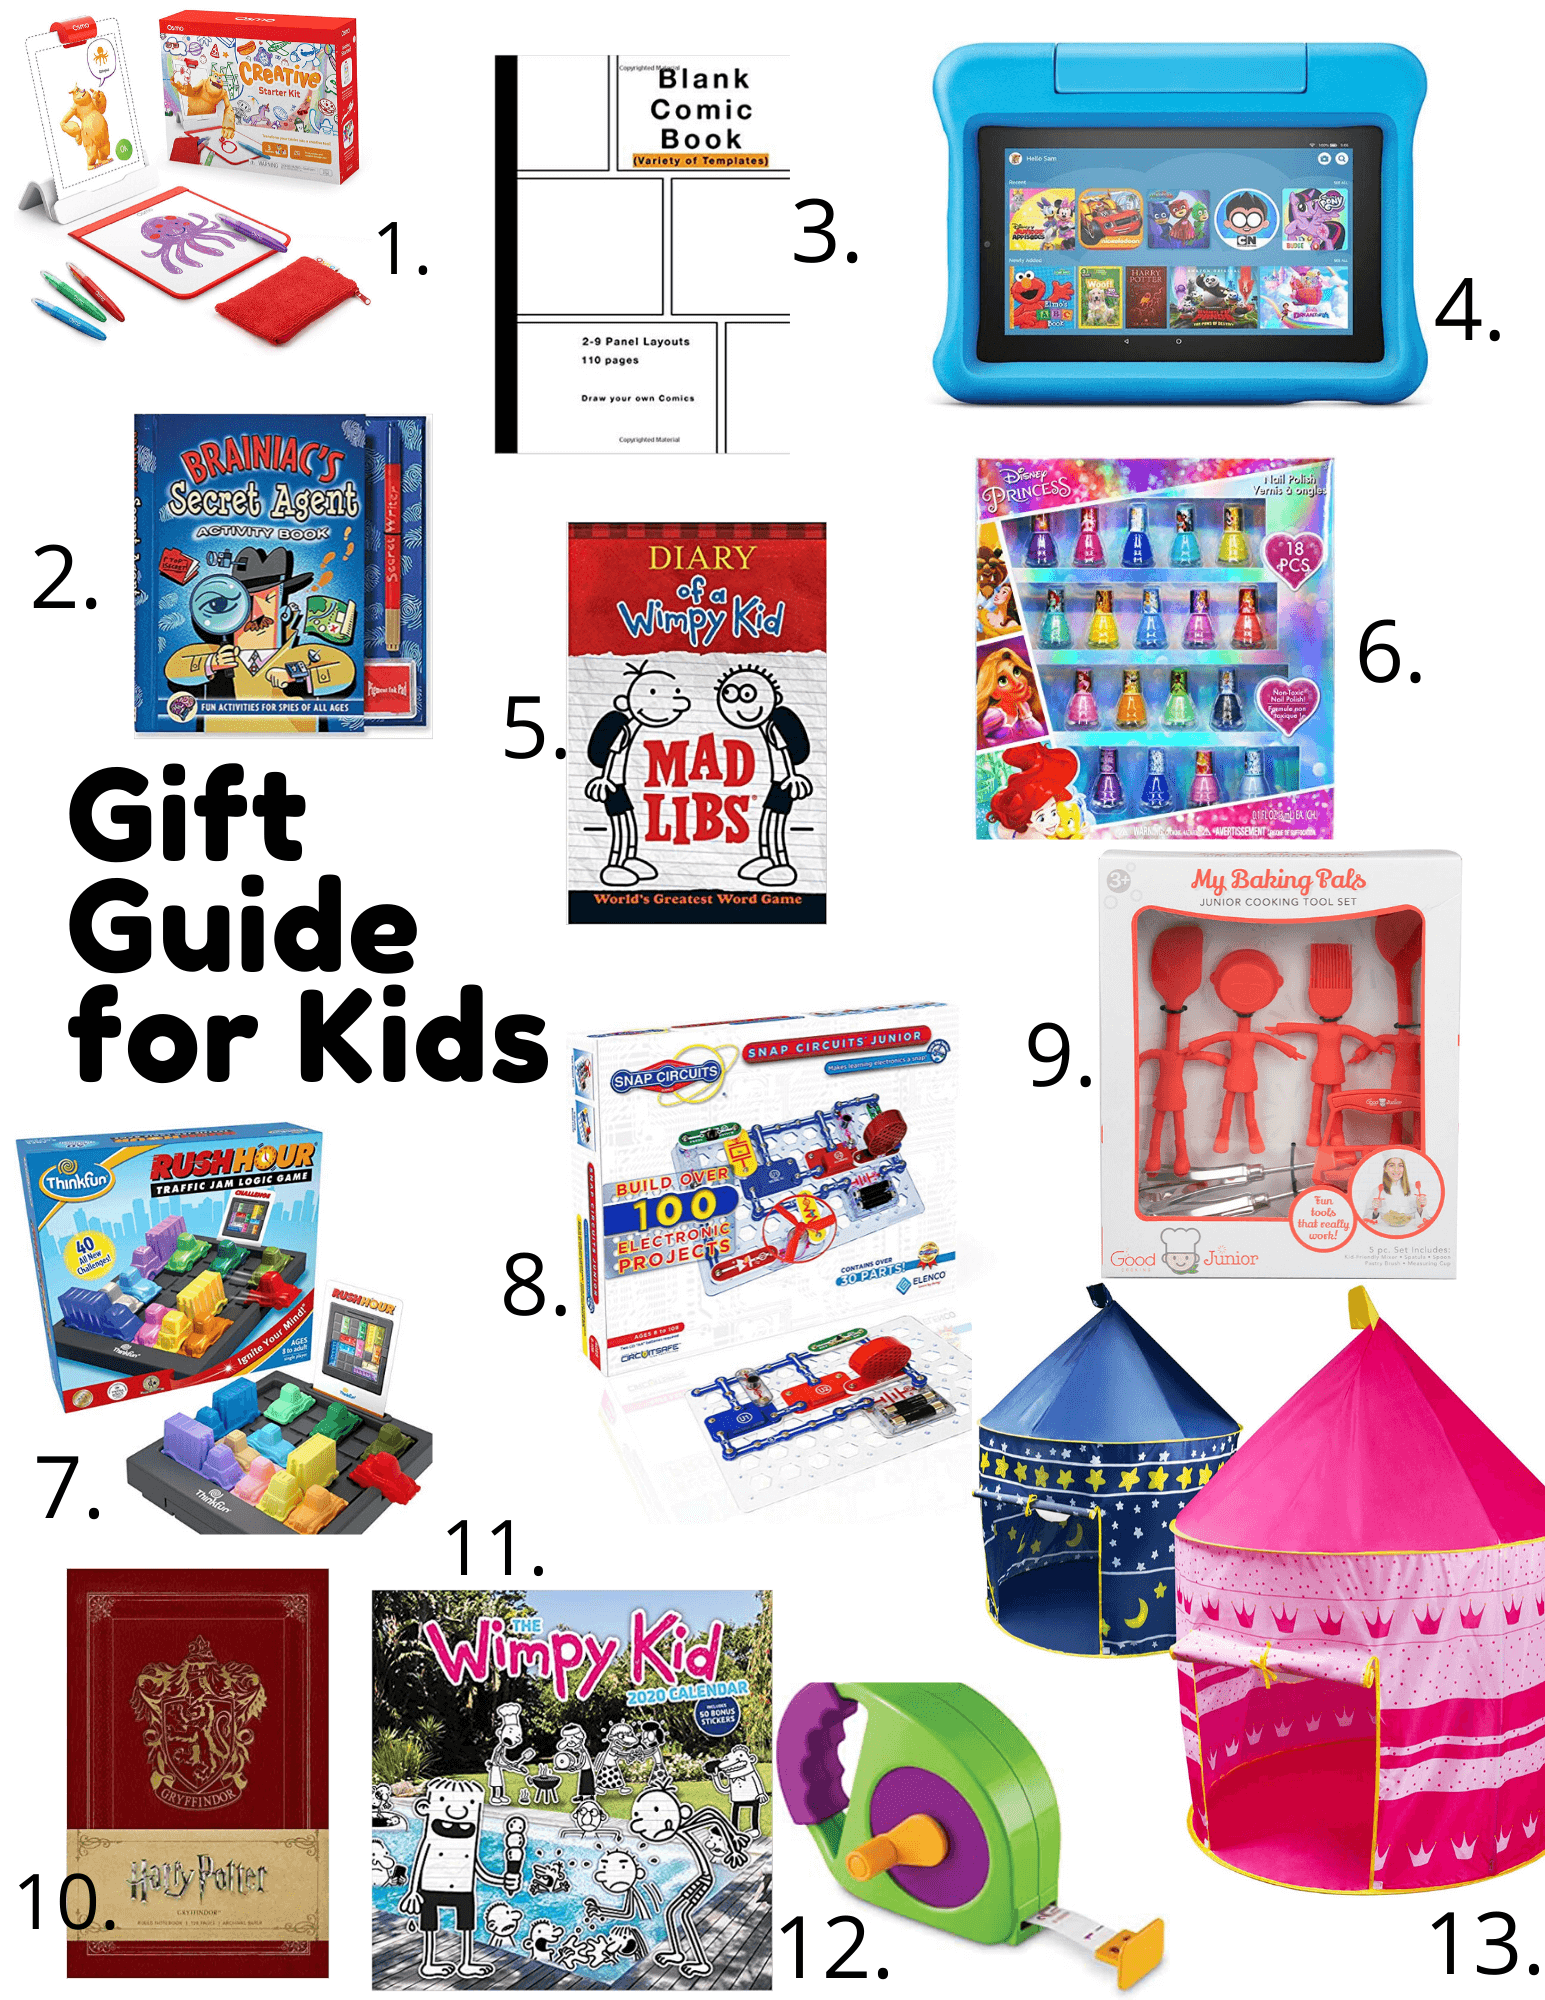 Christmas holiday Gift Guide for Kids sparkleshinylove; gift ideas for kids